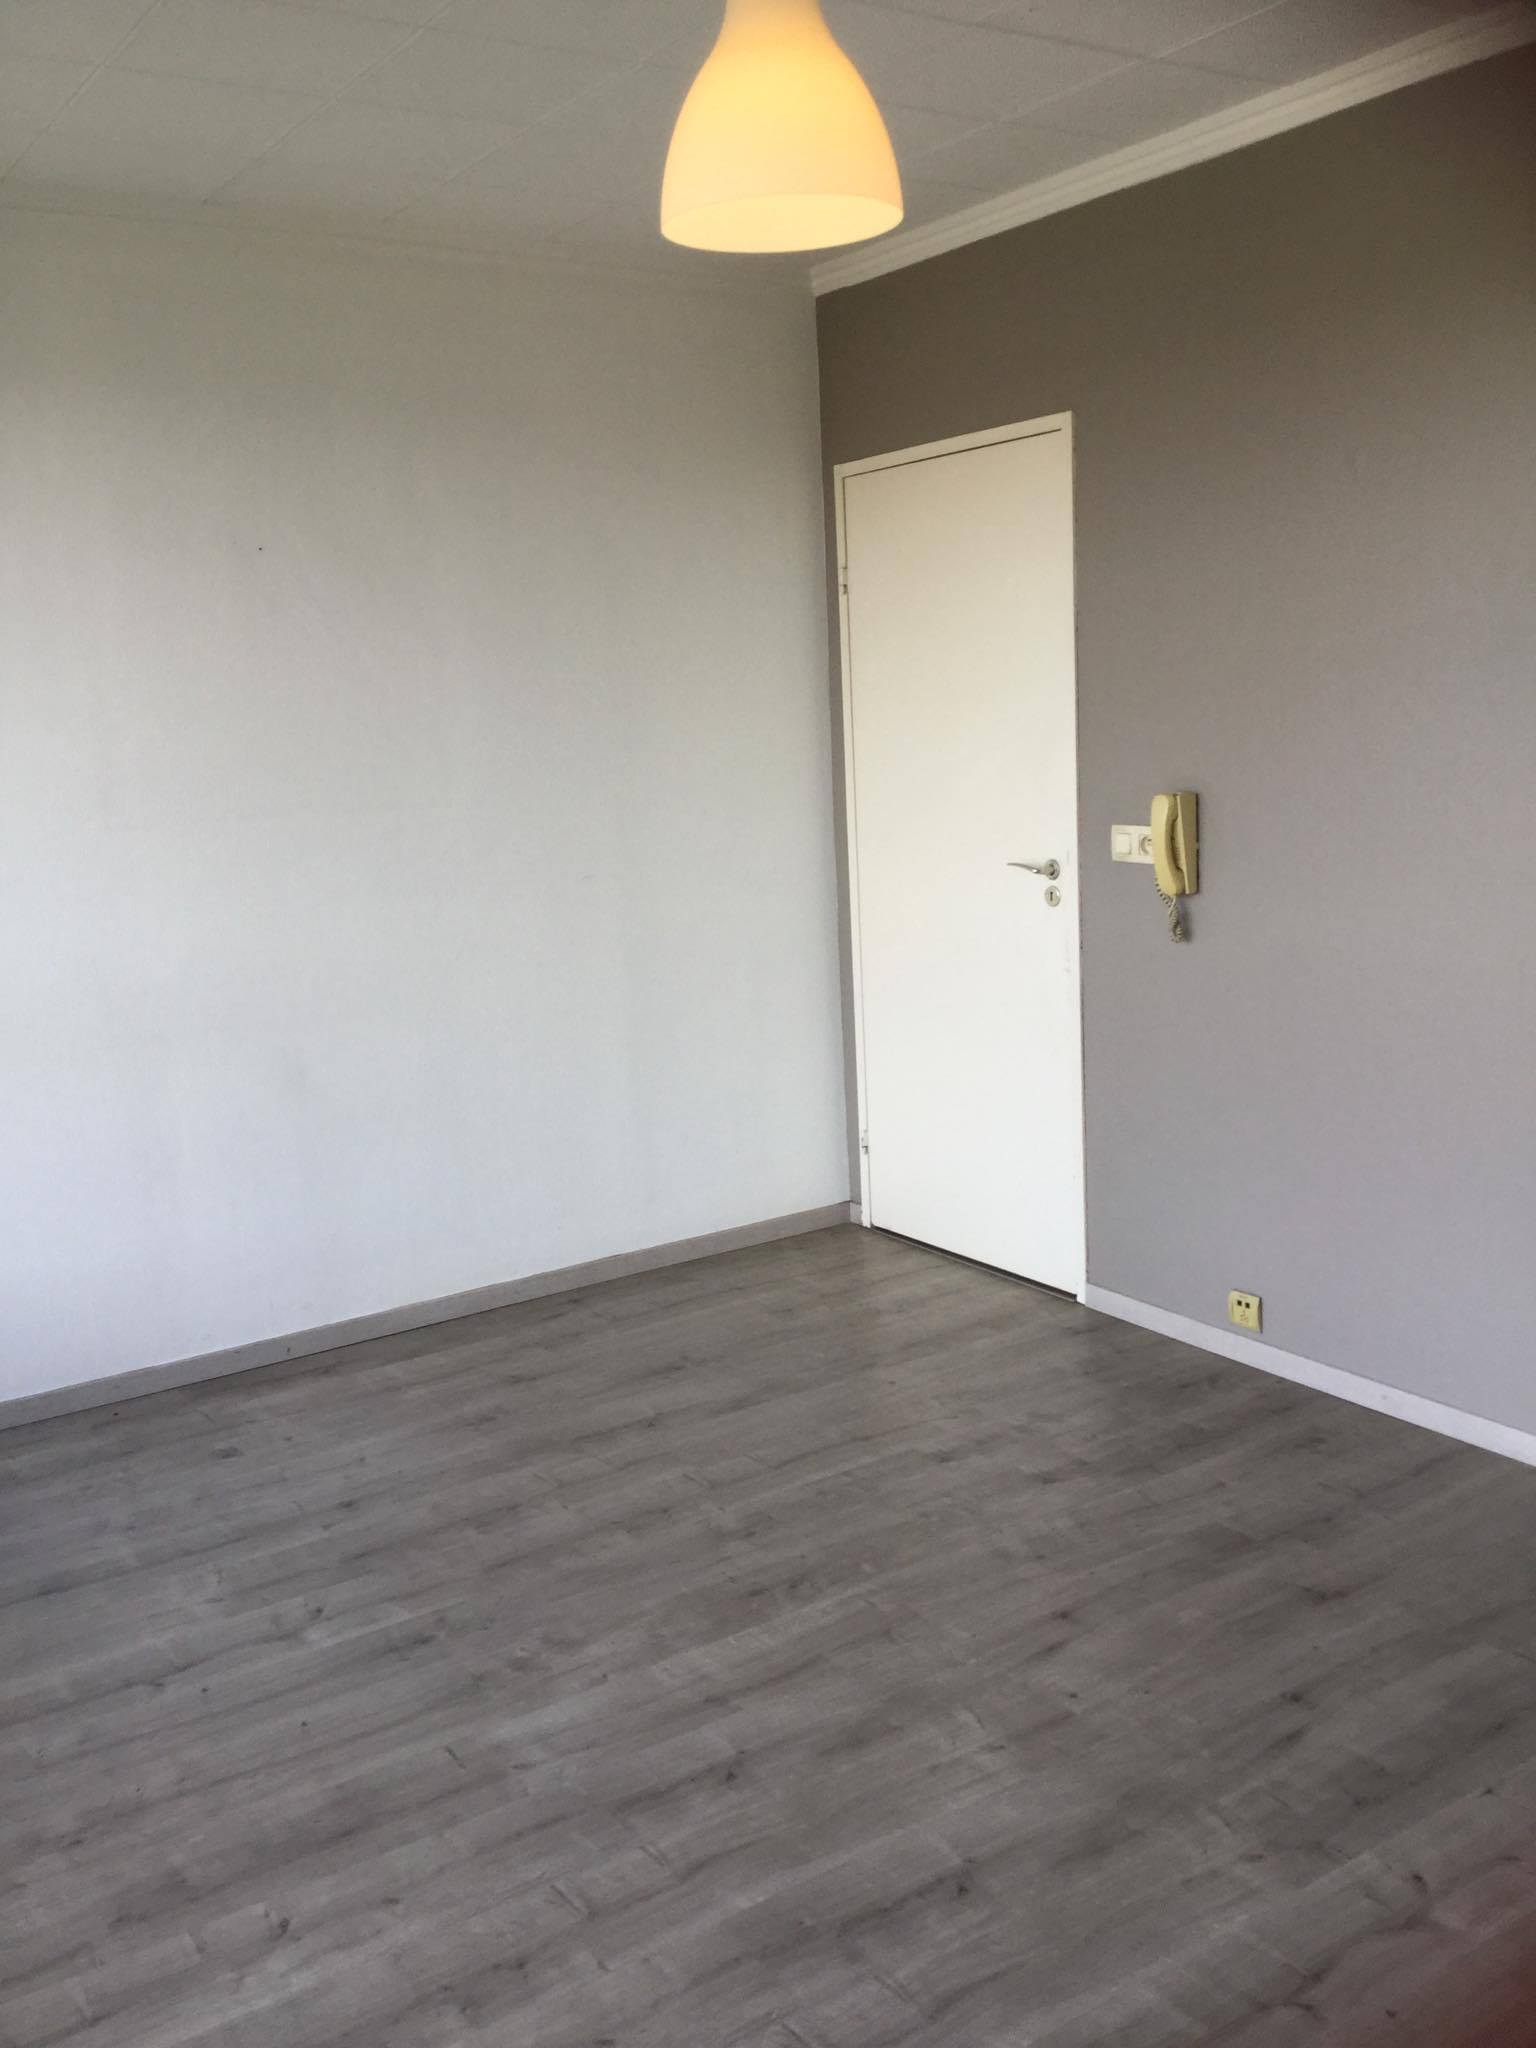 A louer appartement 1 chambre cointe 4000 immo particulier - Chambre a louer particulier ...